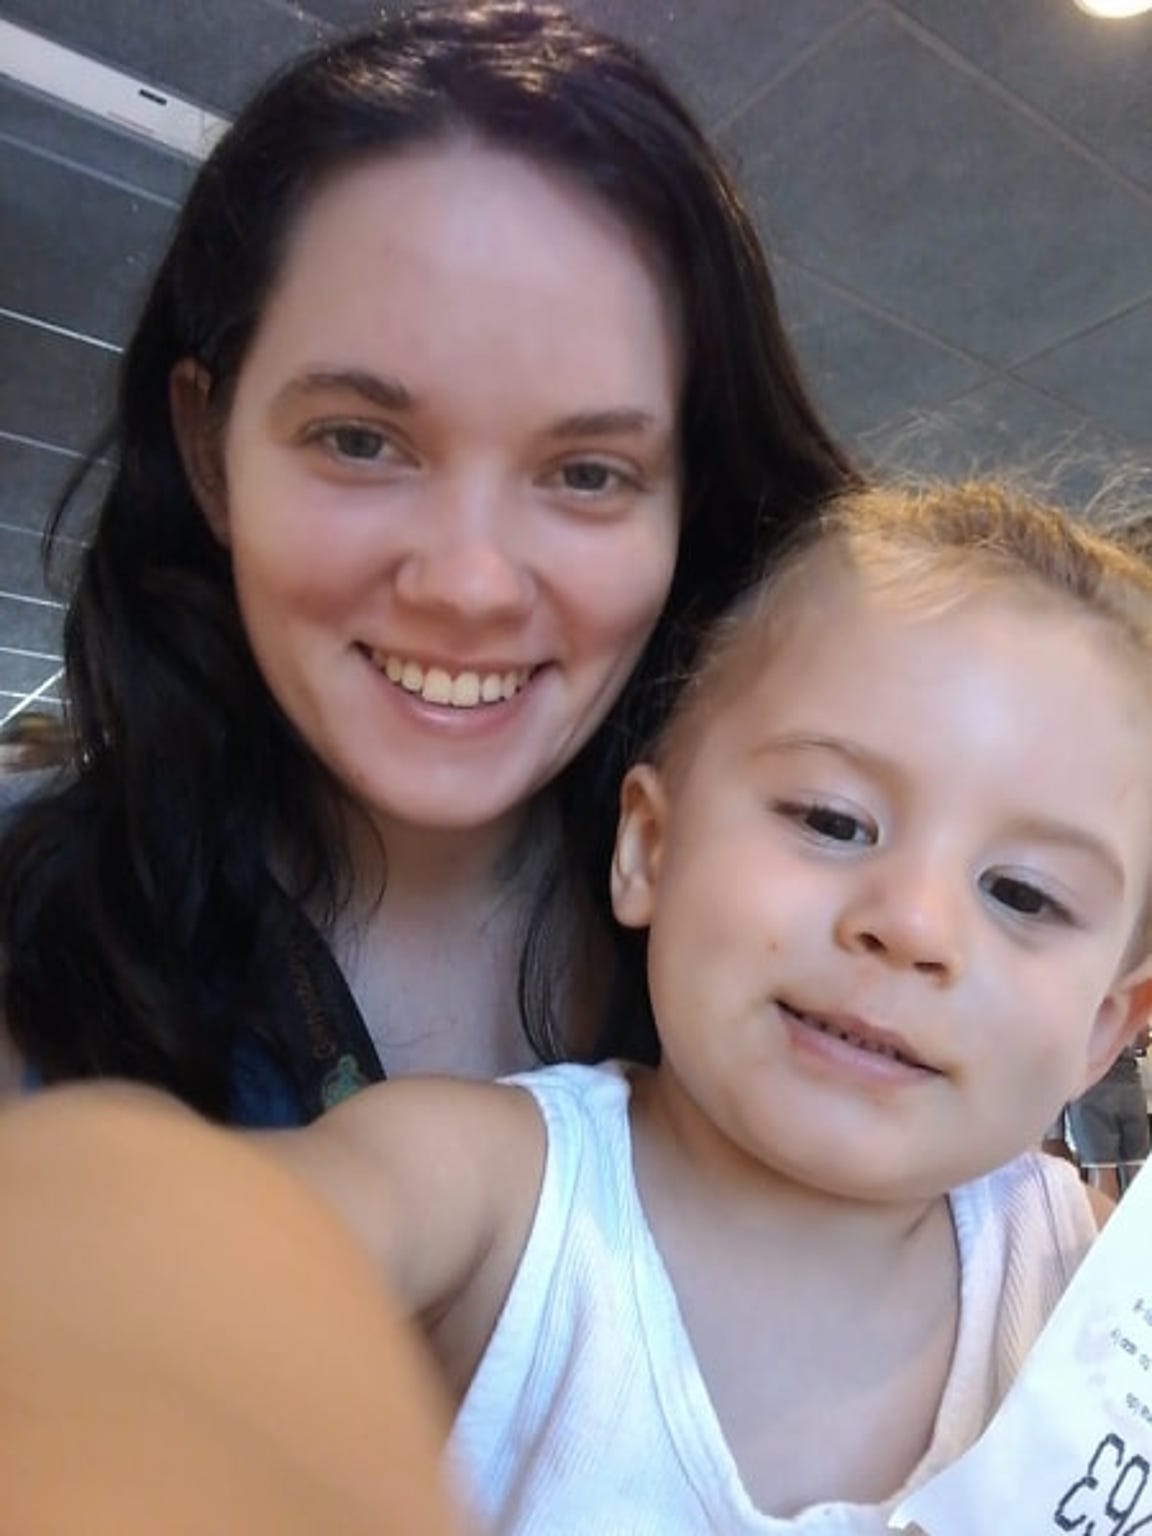 """Leah Mullinix, 22, of York, is seen with her late son, Dante. She described him as a """"mama's boy"""" and a """"ladies' man."""" """"I love my son,"""" she said."""